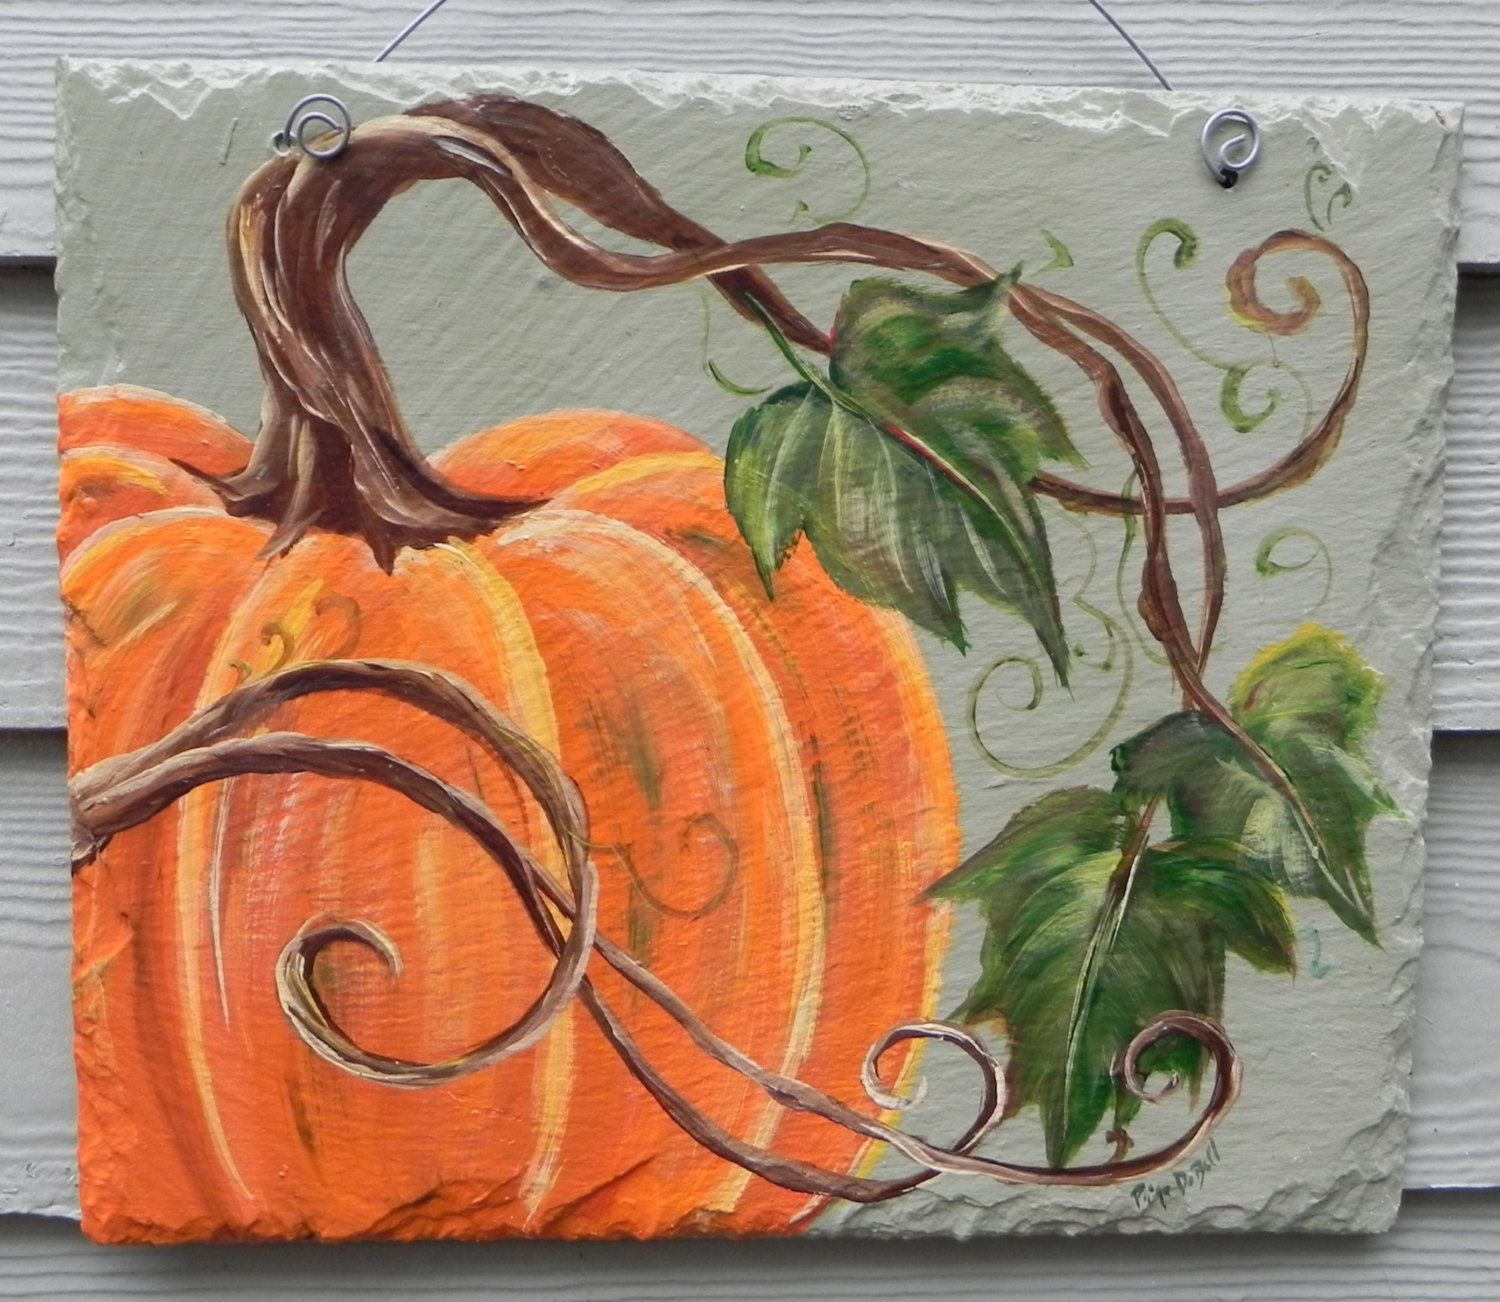 Pumpkin crafty ideas pinterest pumpkin canvas for Fall paintings easy